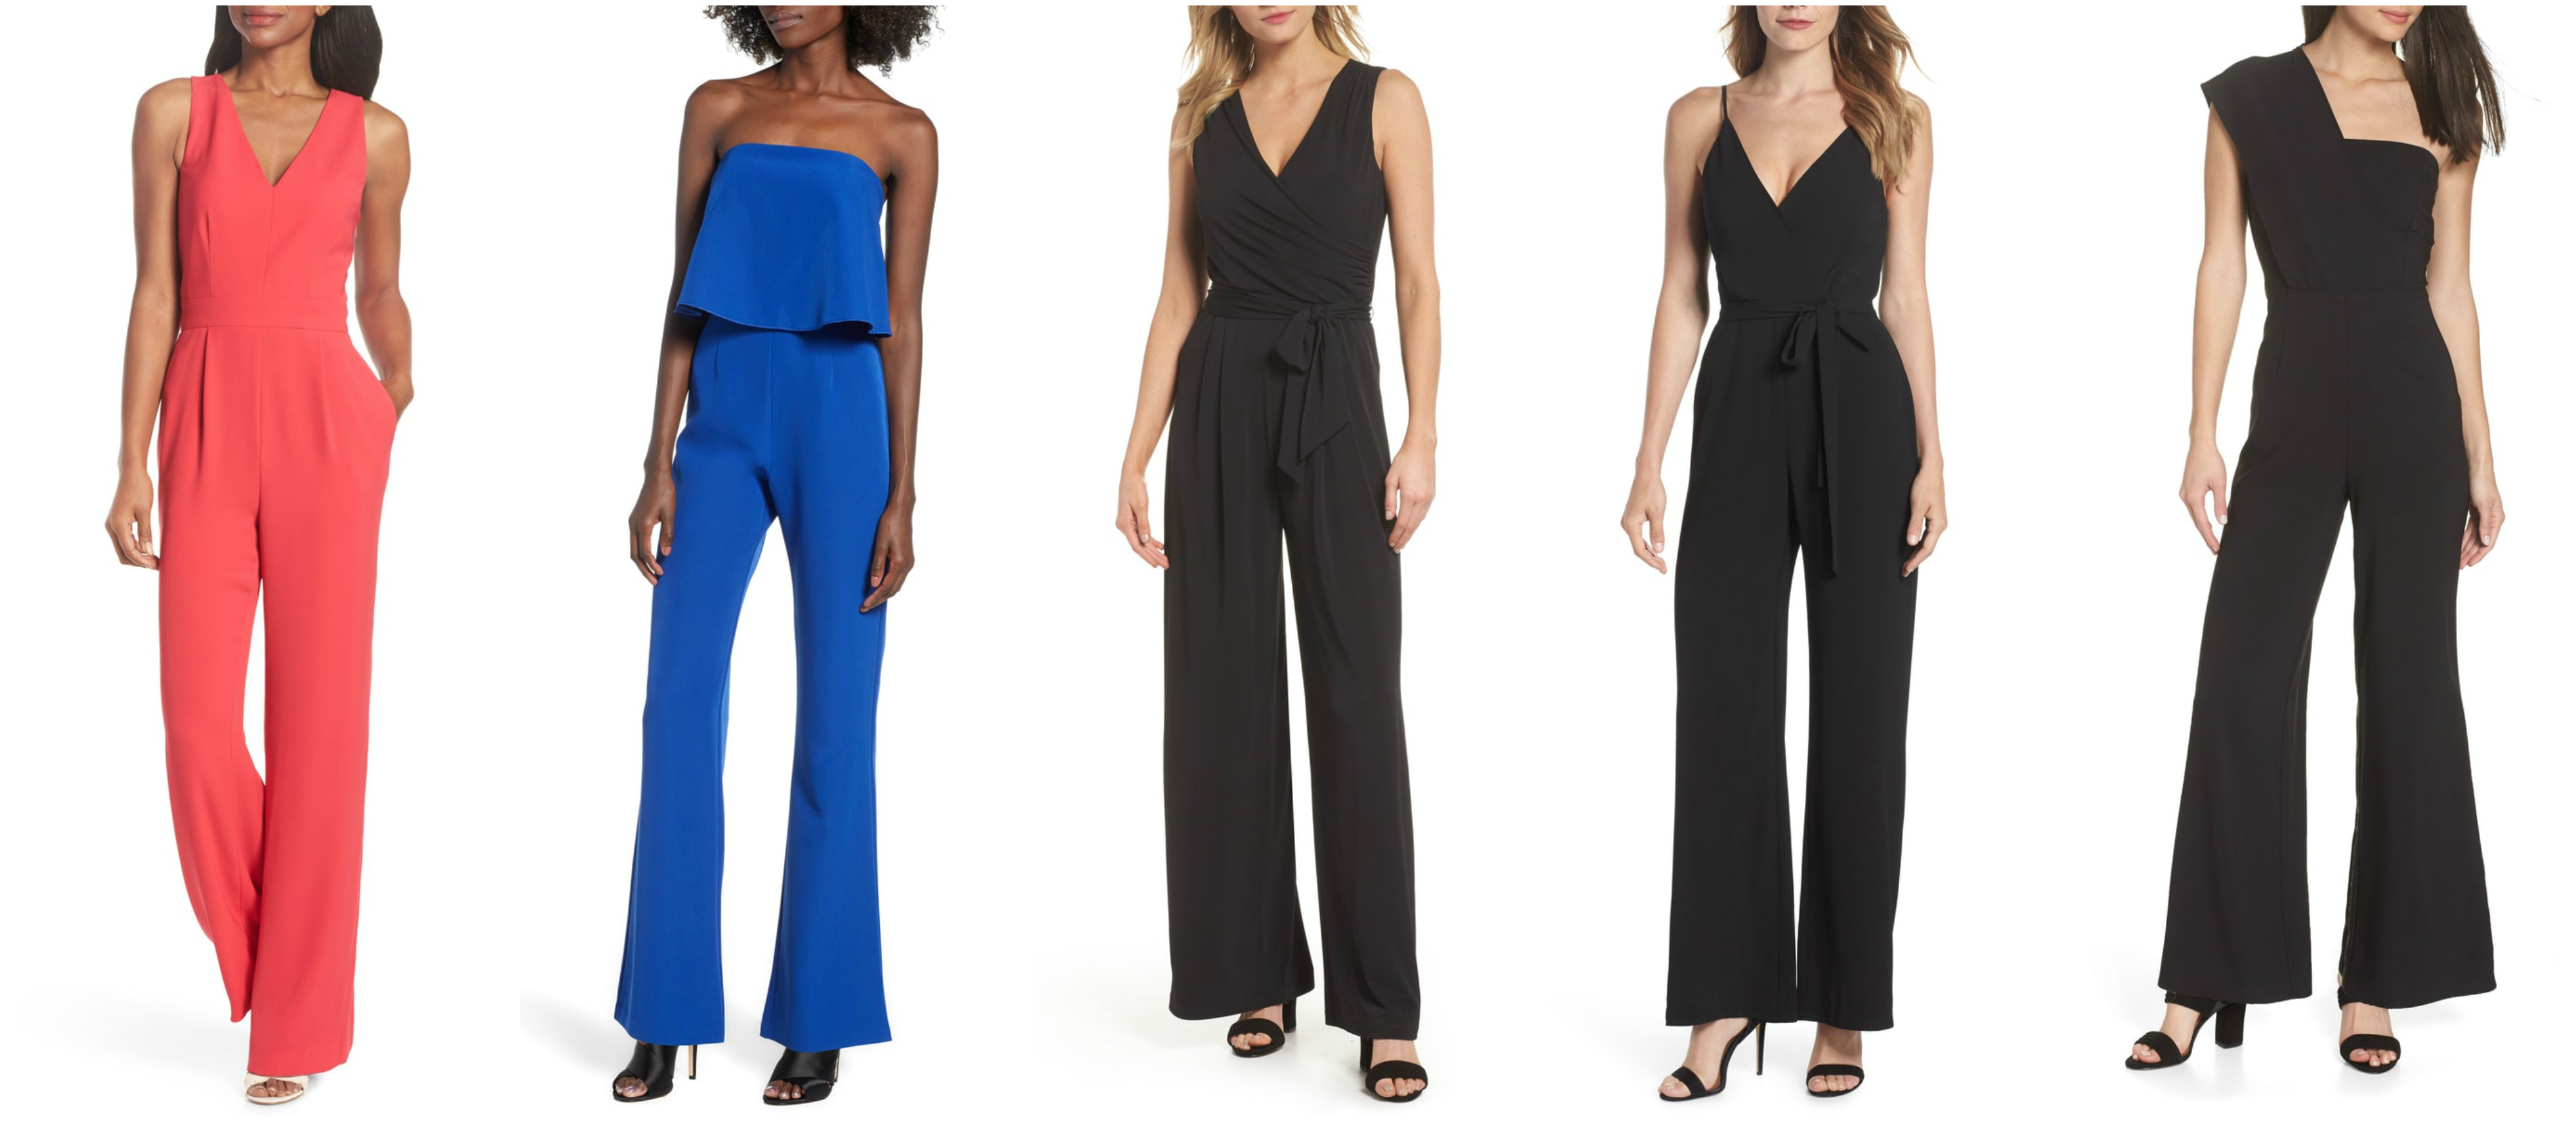 Wedding Guest Jumpsuits Under $100 - Wedding Guest Dresses Under $100 - Wedding Guest Dress - Wedding Guest Outfit - What To Wear To A Wedding - Spring Wedding - Summer Wedding - Winter Wedding - Communikait by Kait Hanson